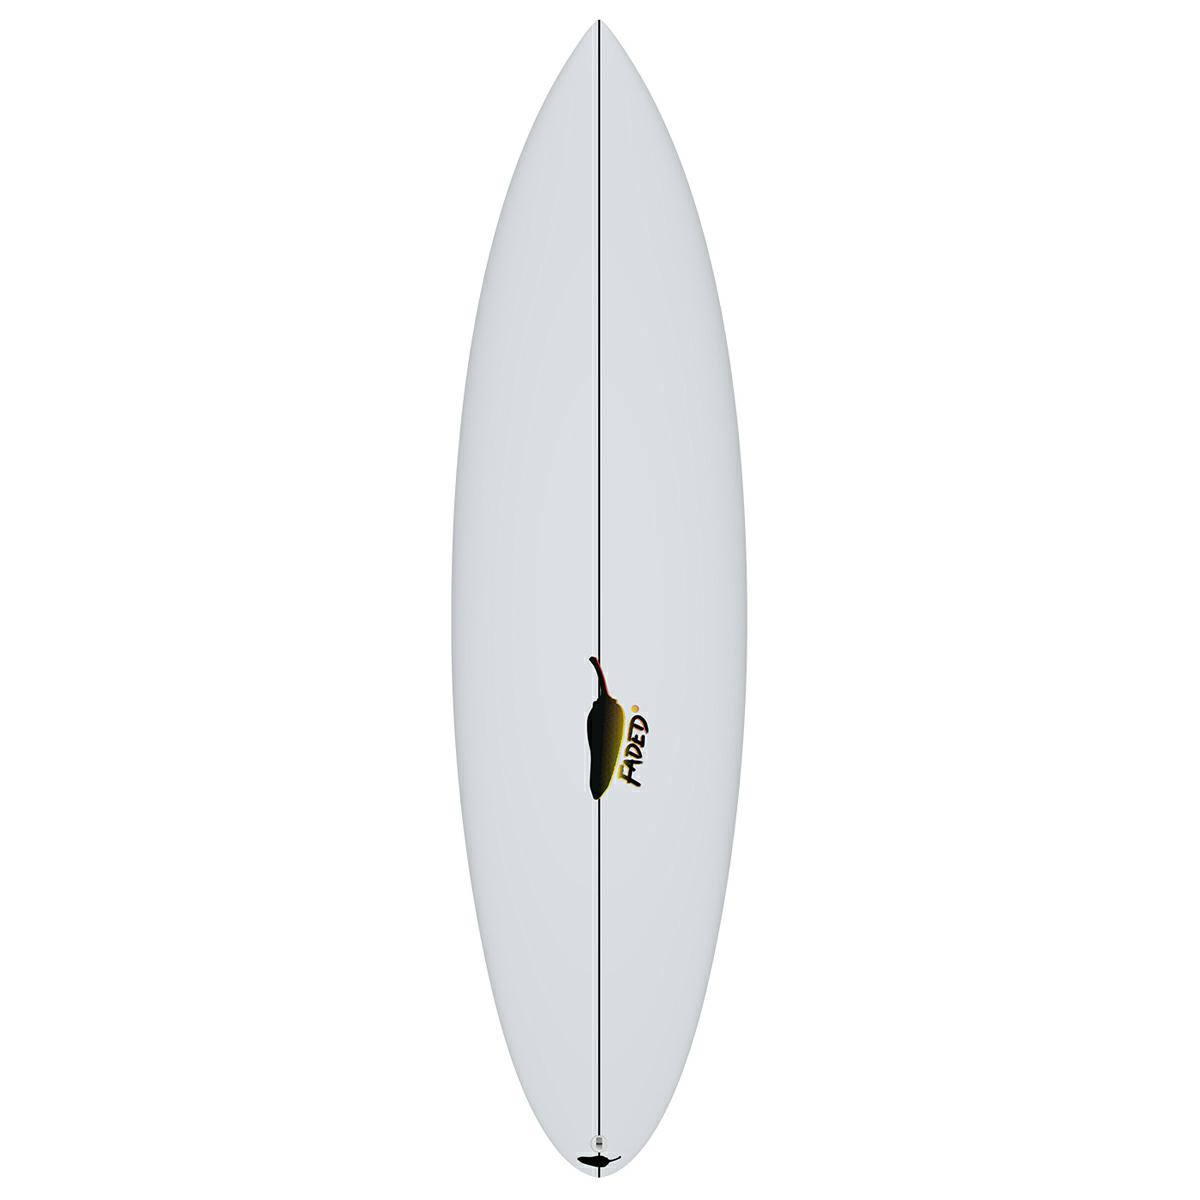 Chilli Surfboards Faded 2.0 Fcs2. Chilli Surfboards Surfboards in Boardsports Surfboards & Boardsports Surf. Code: FADED2.0